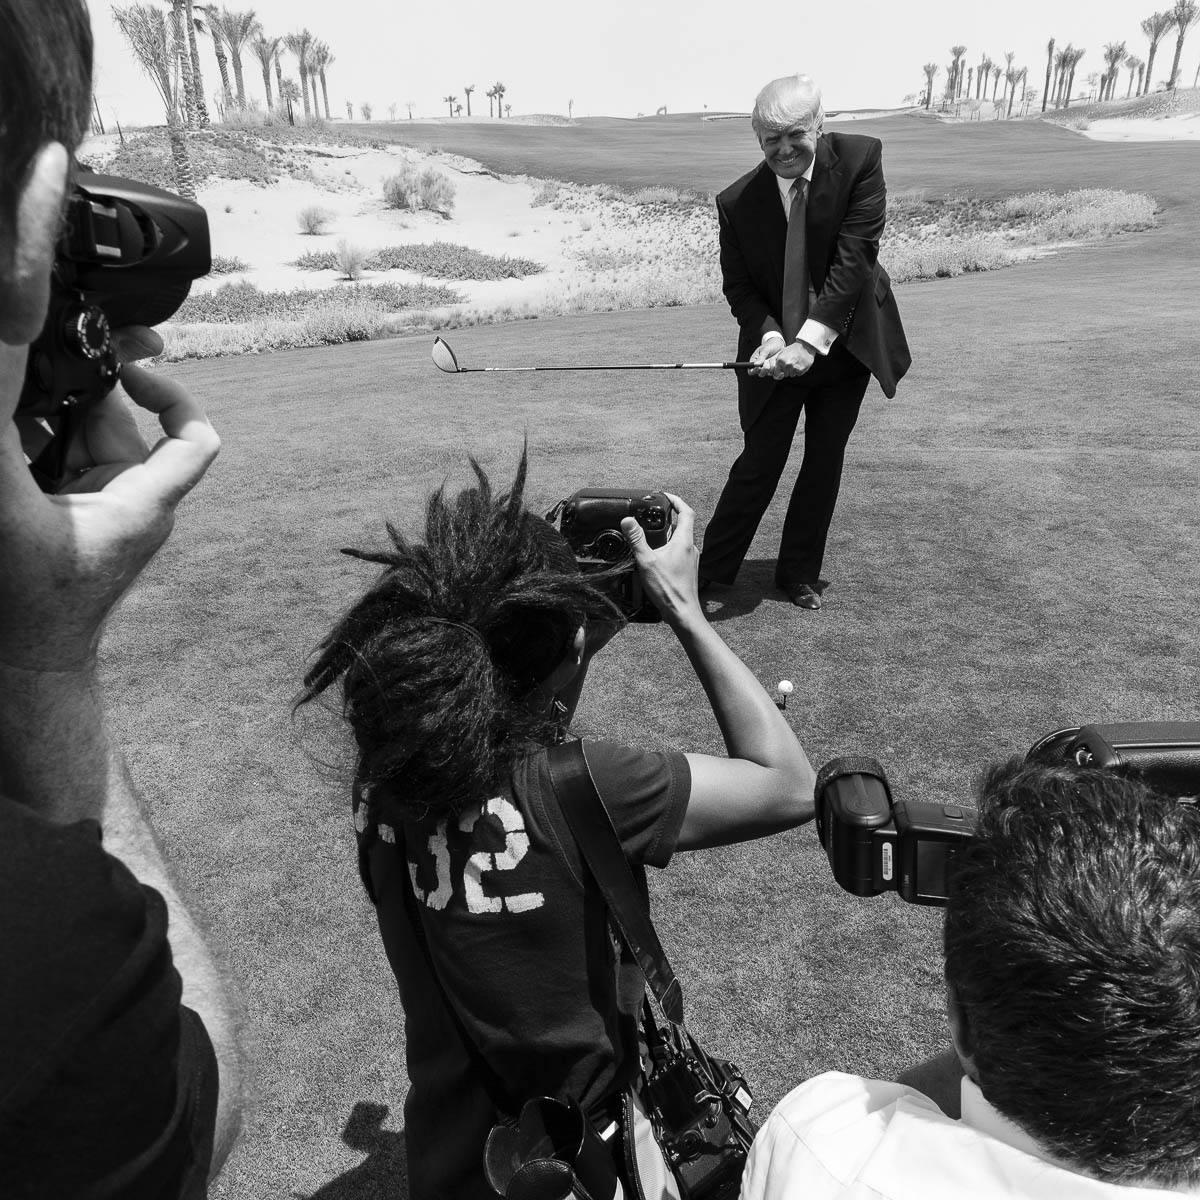 Donald Trump takes a practice swing for photographers on the Akoya golf course in Dubai